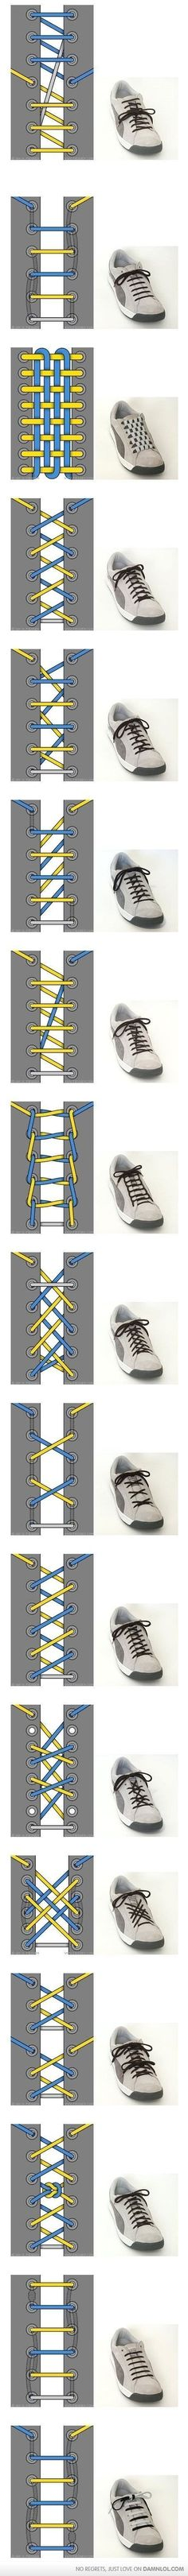 How to tie your shoes Shoelace Fun